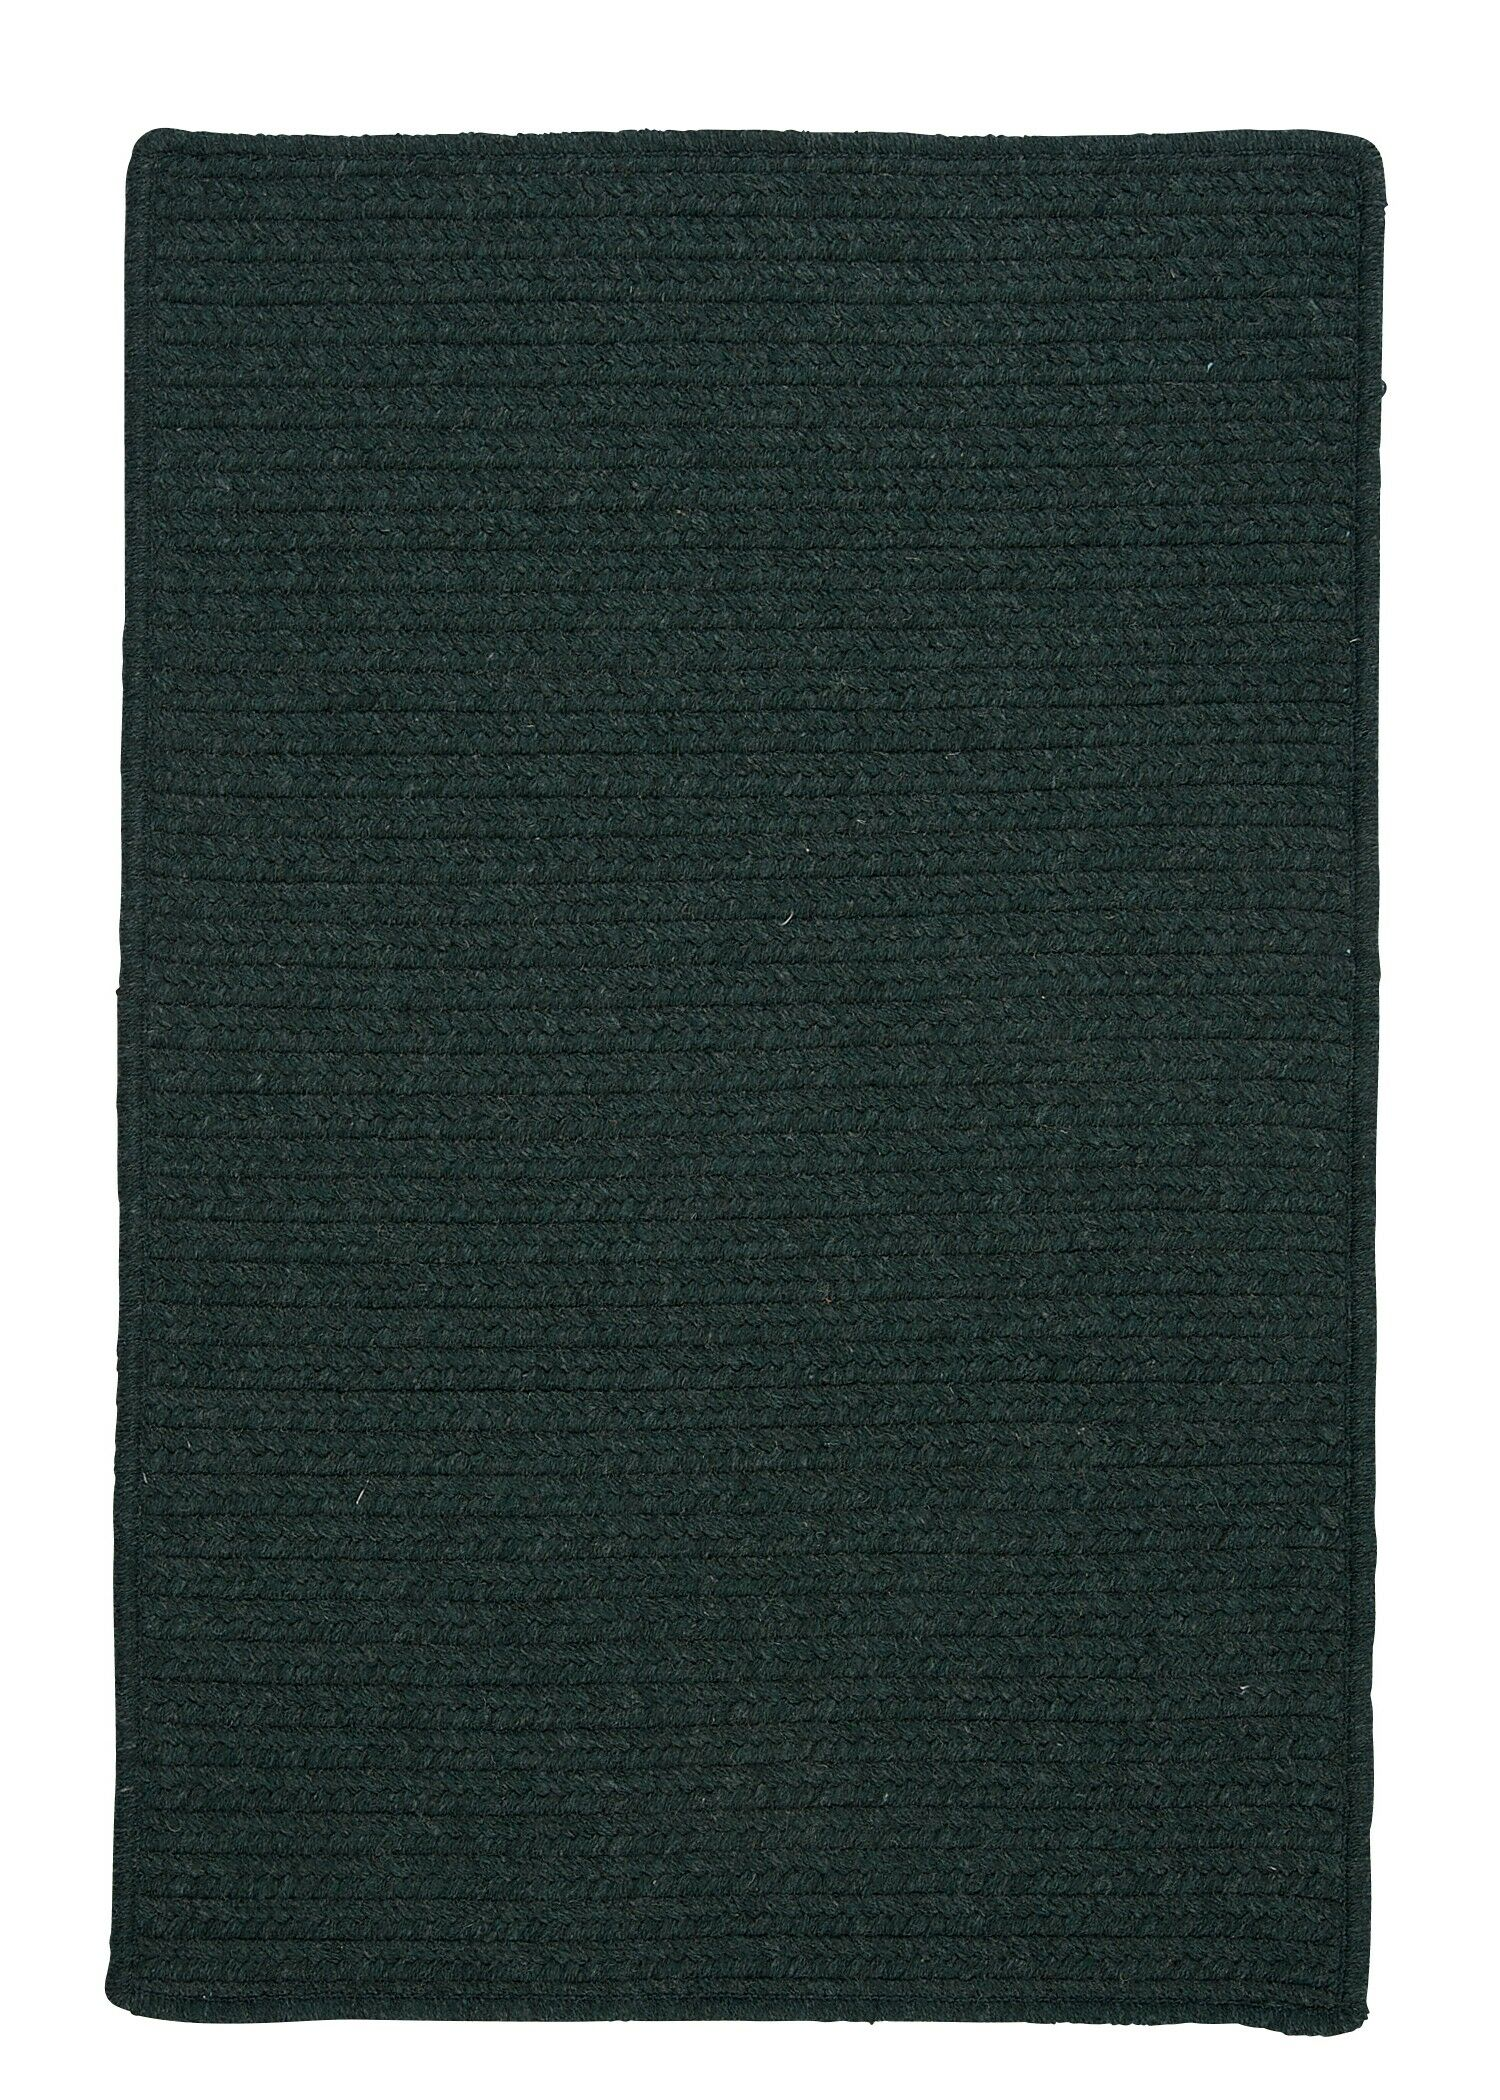 Courtyard Cypress Green Rug Rug Size: Square 10', Fringe: Not Included